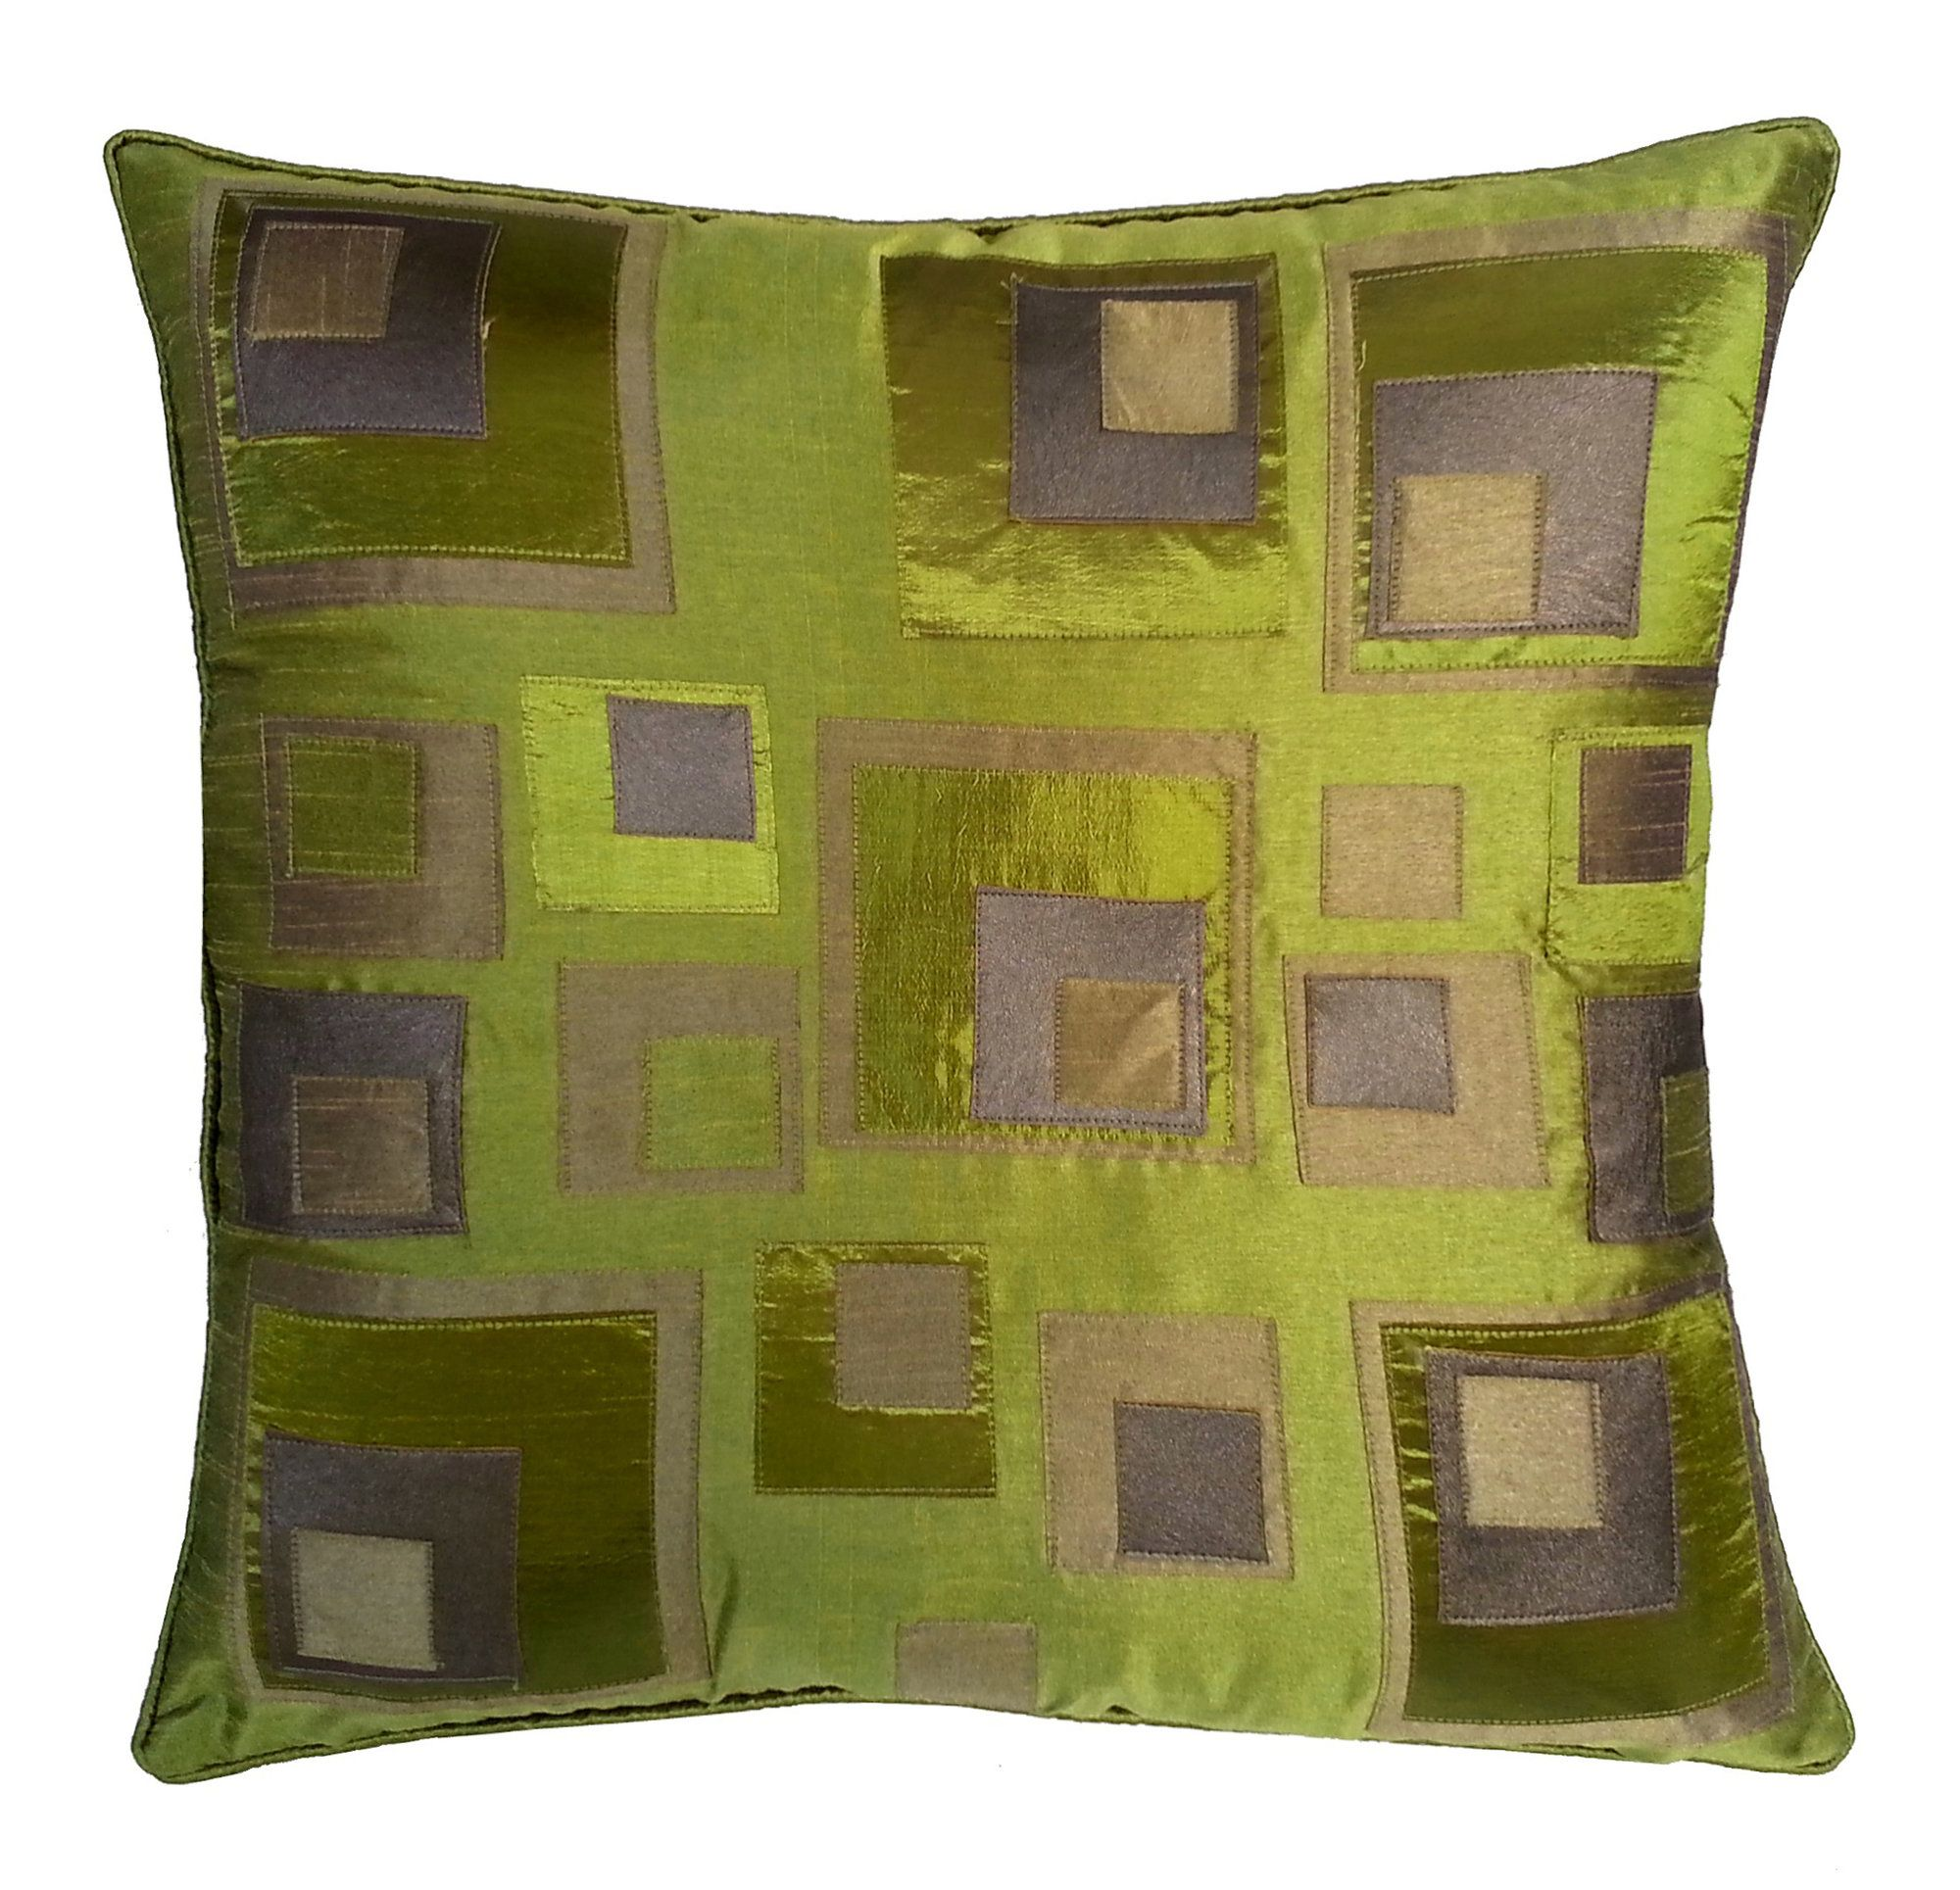 Stacked square throw pillow throw pillows squares and pillows